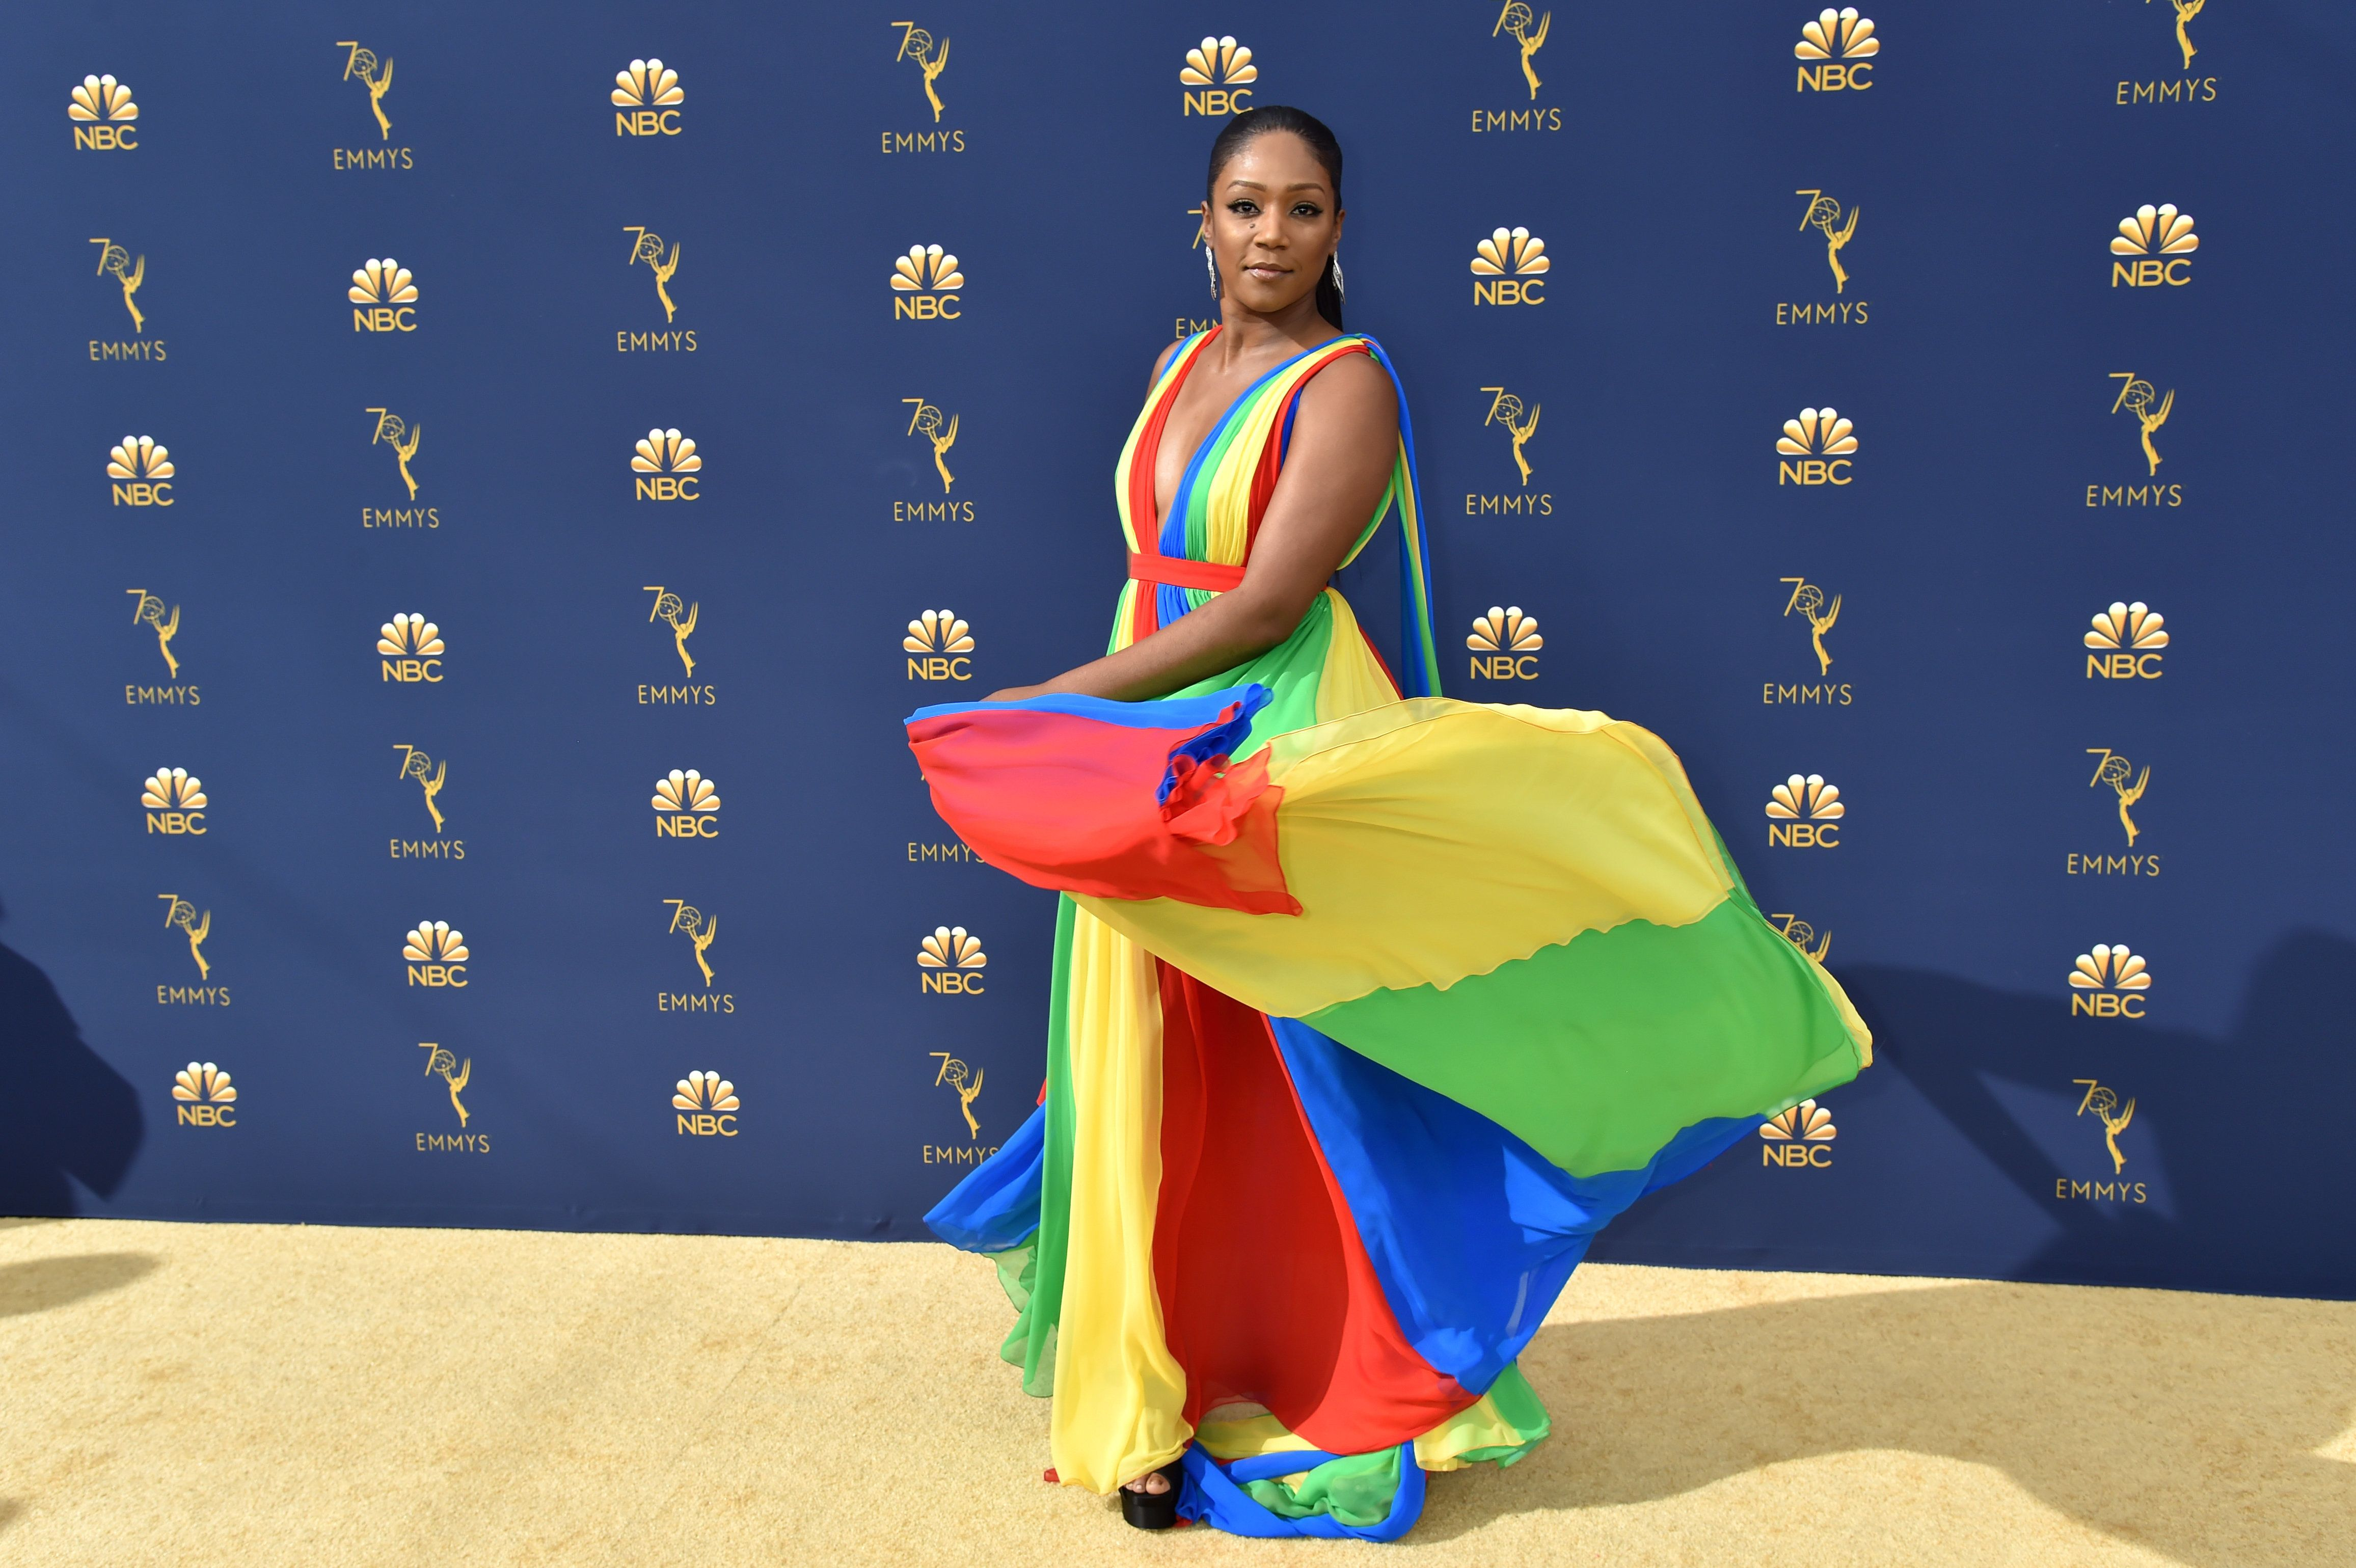 LOS ANGELES, CA - SEPTEMBER 17:  Tiffany Haddish  attends the 70th Emmy Awards at Microsoft Theater on September 17, 2018 in Los Angeles, California.  (Photo by Jeff Kravitz/FilmMagic)